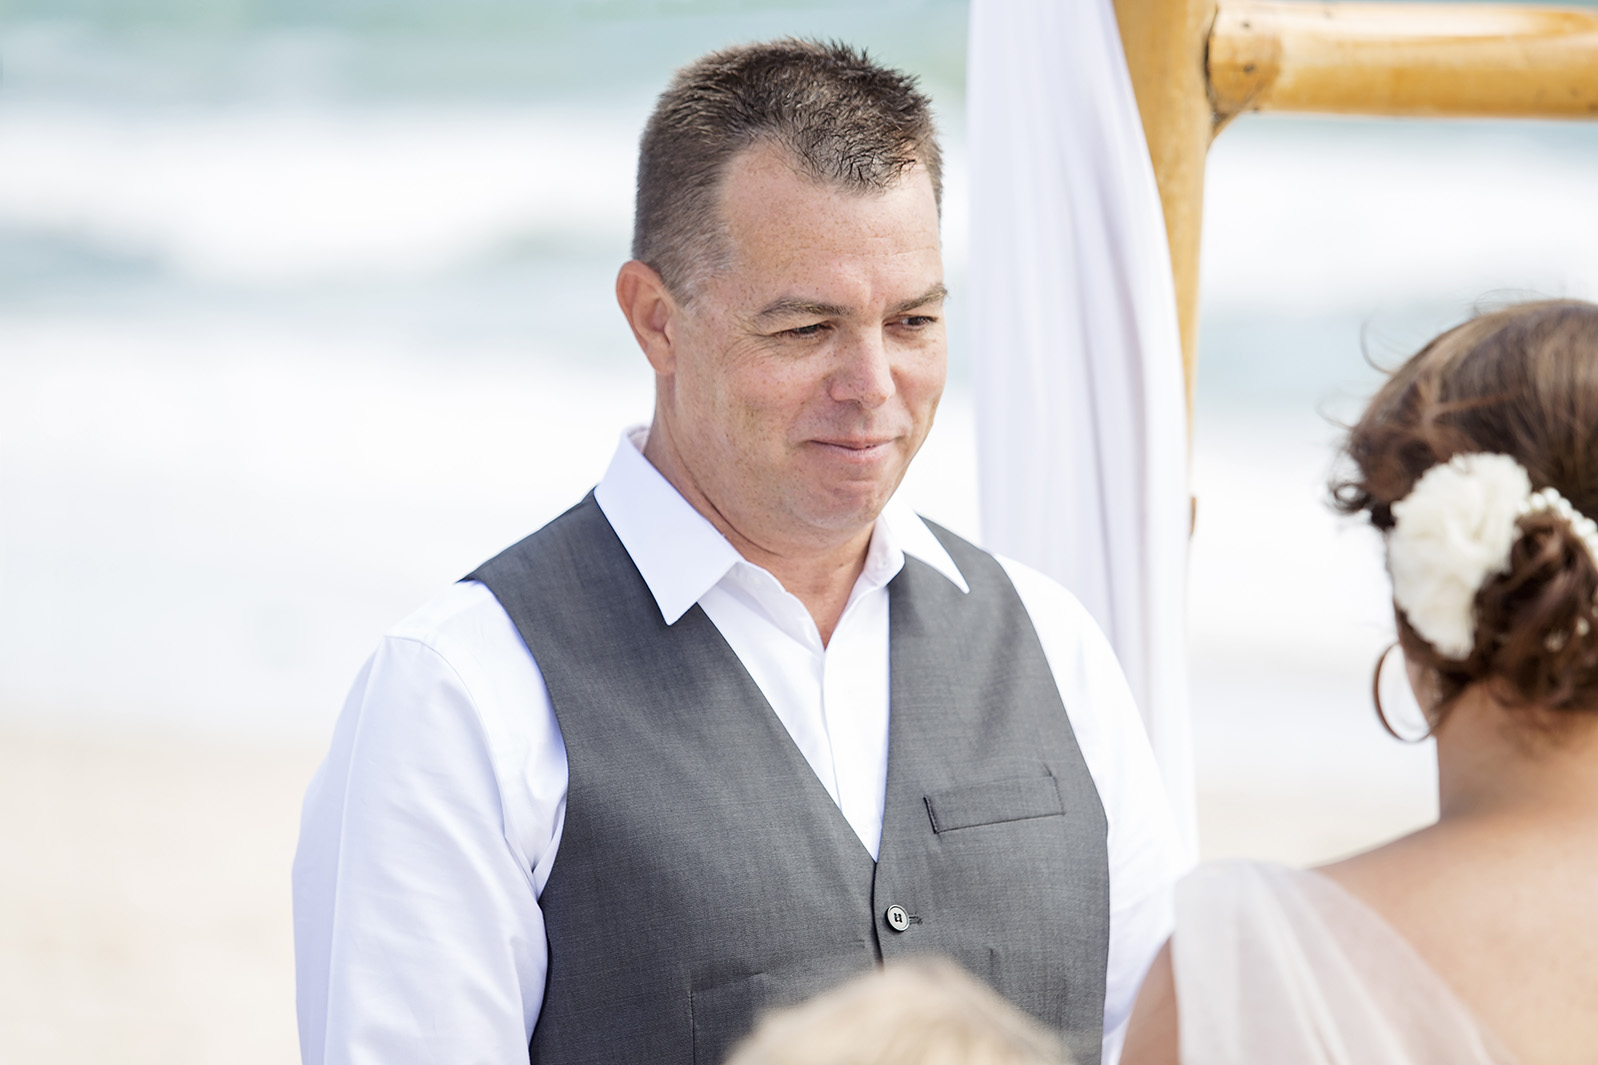 Adelaide Beach Wedding 012.jpg